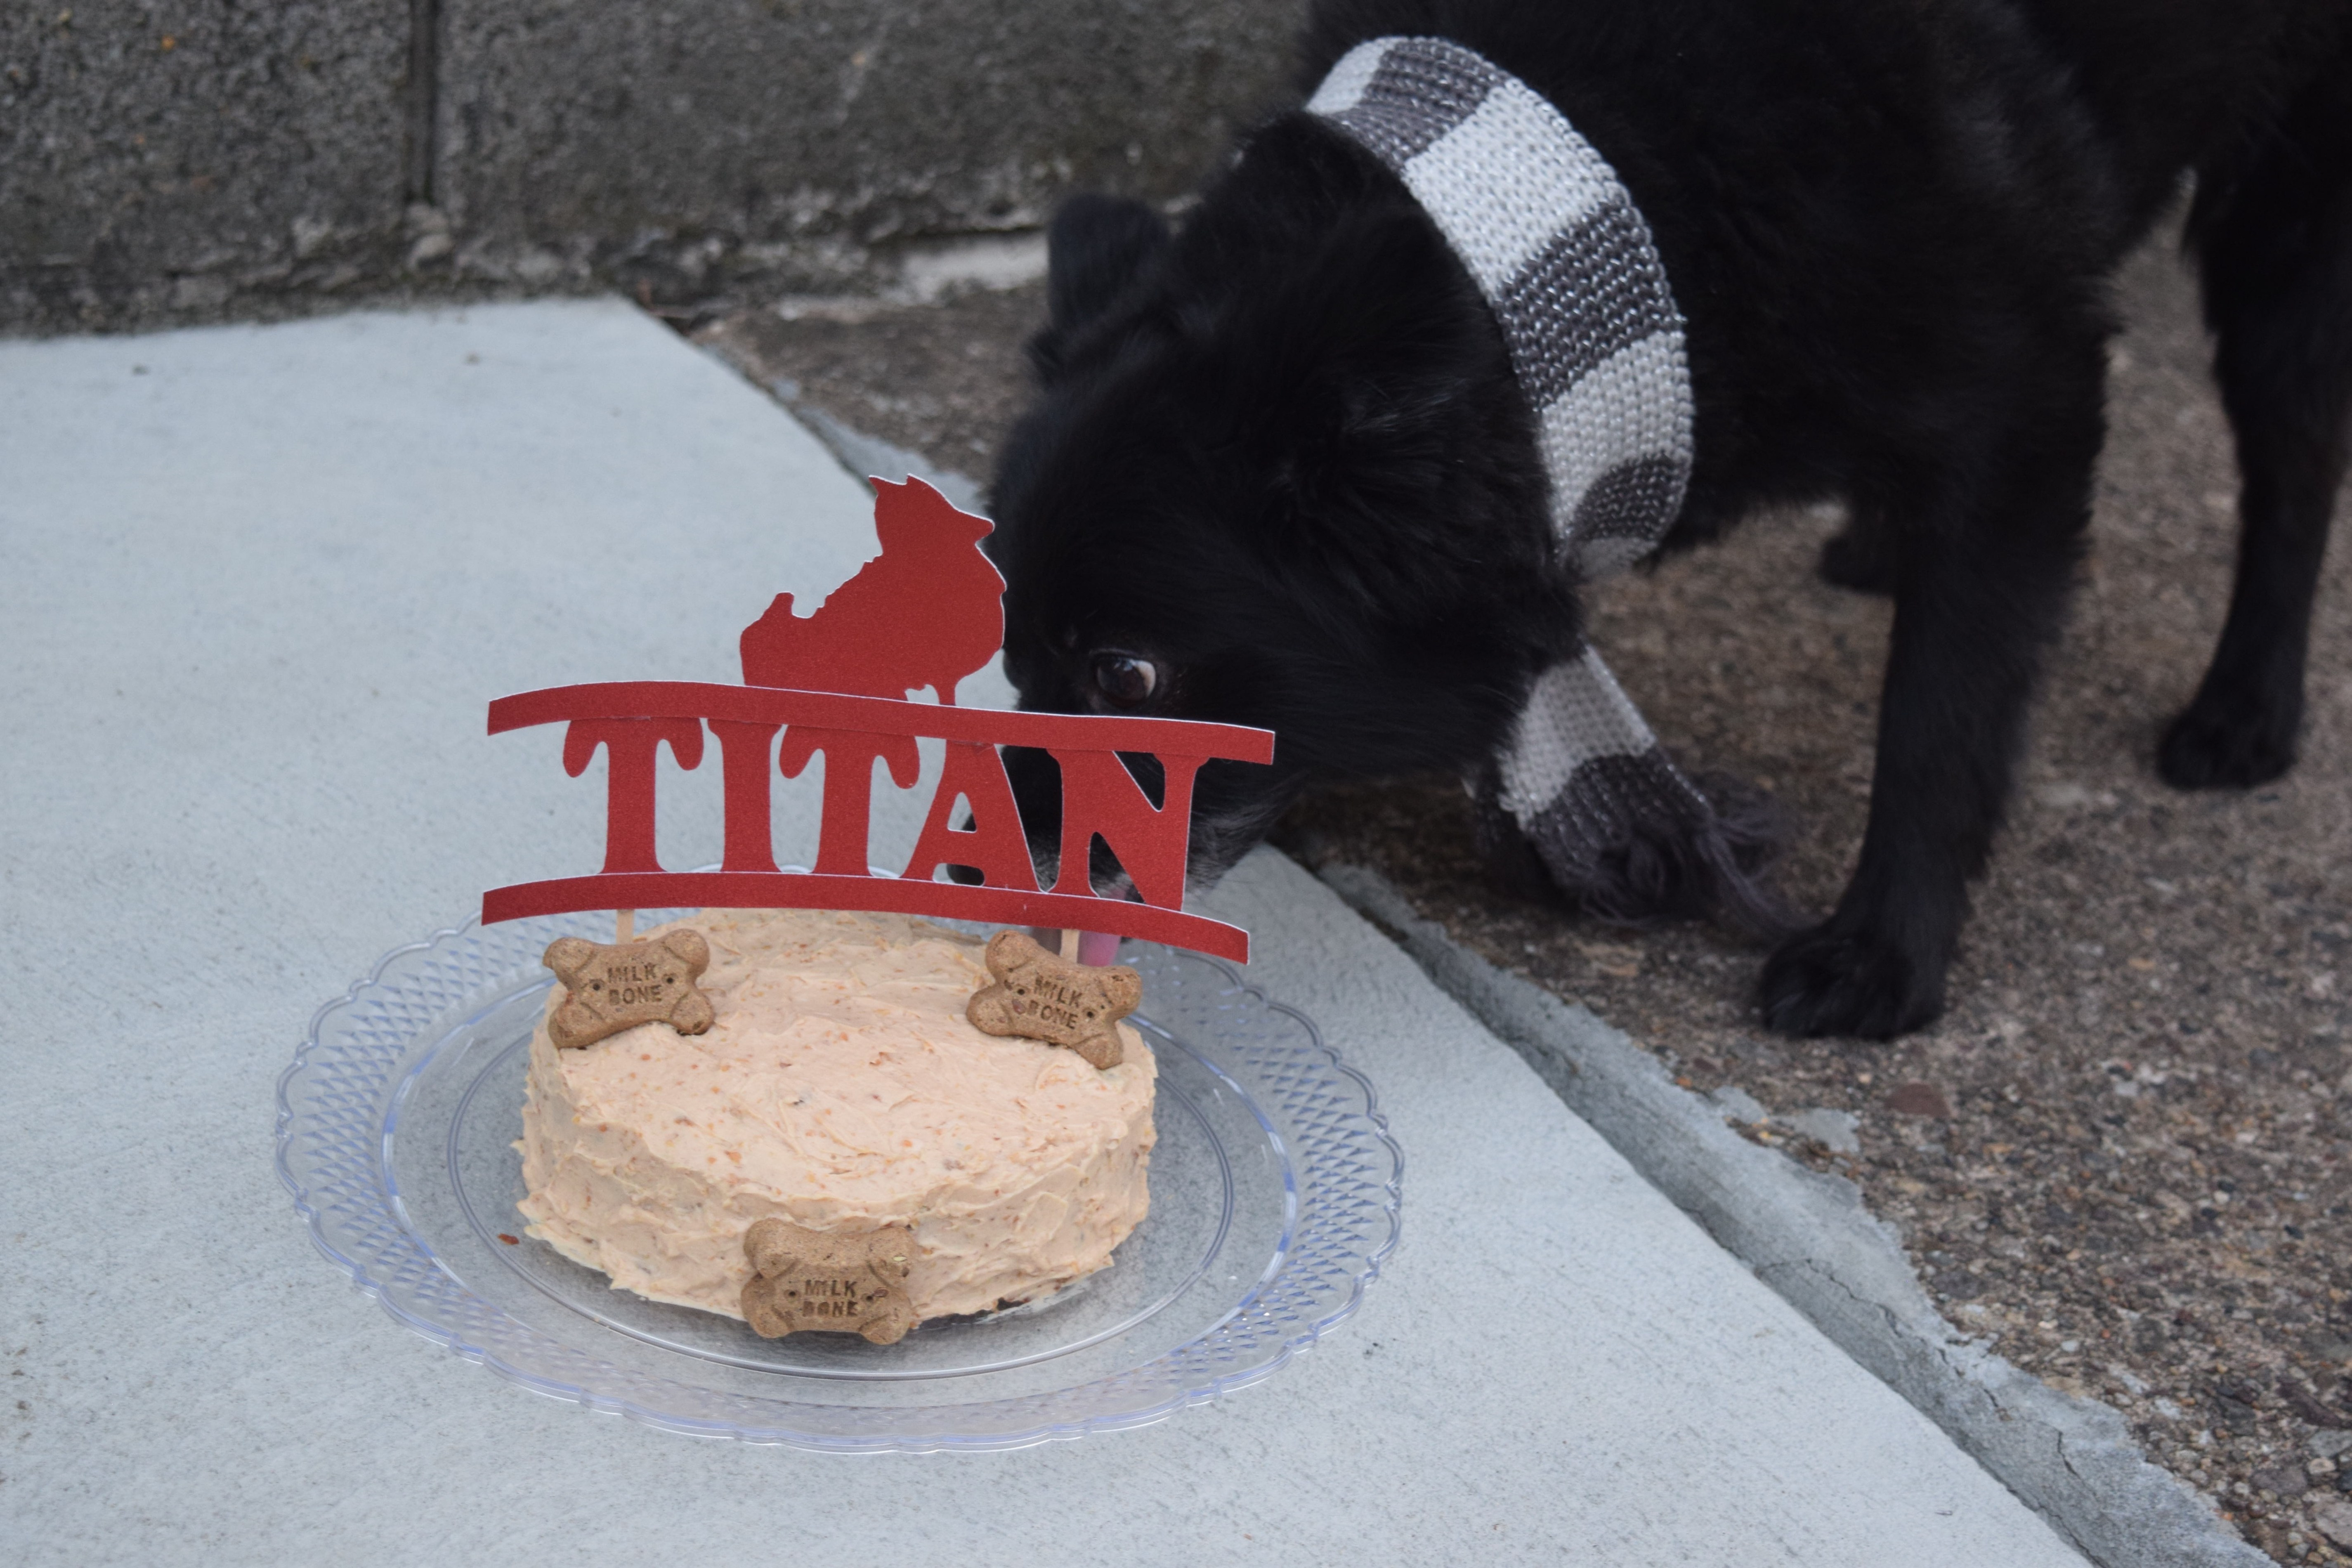 Grain free cake for dogs